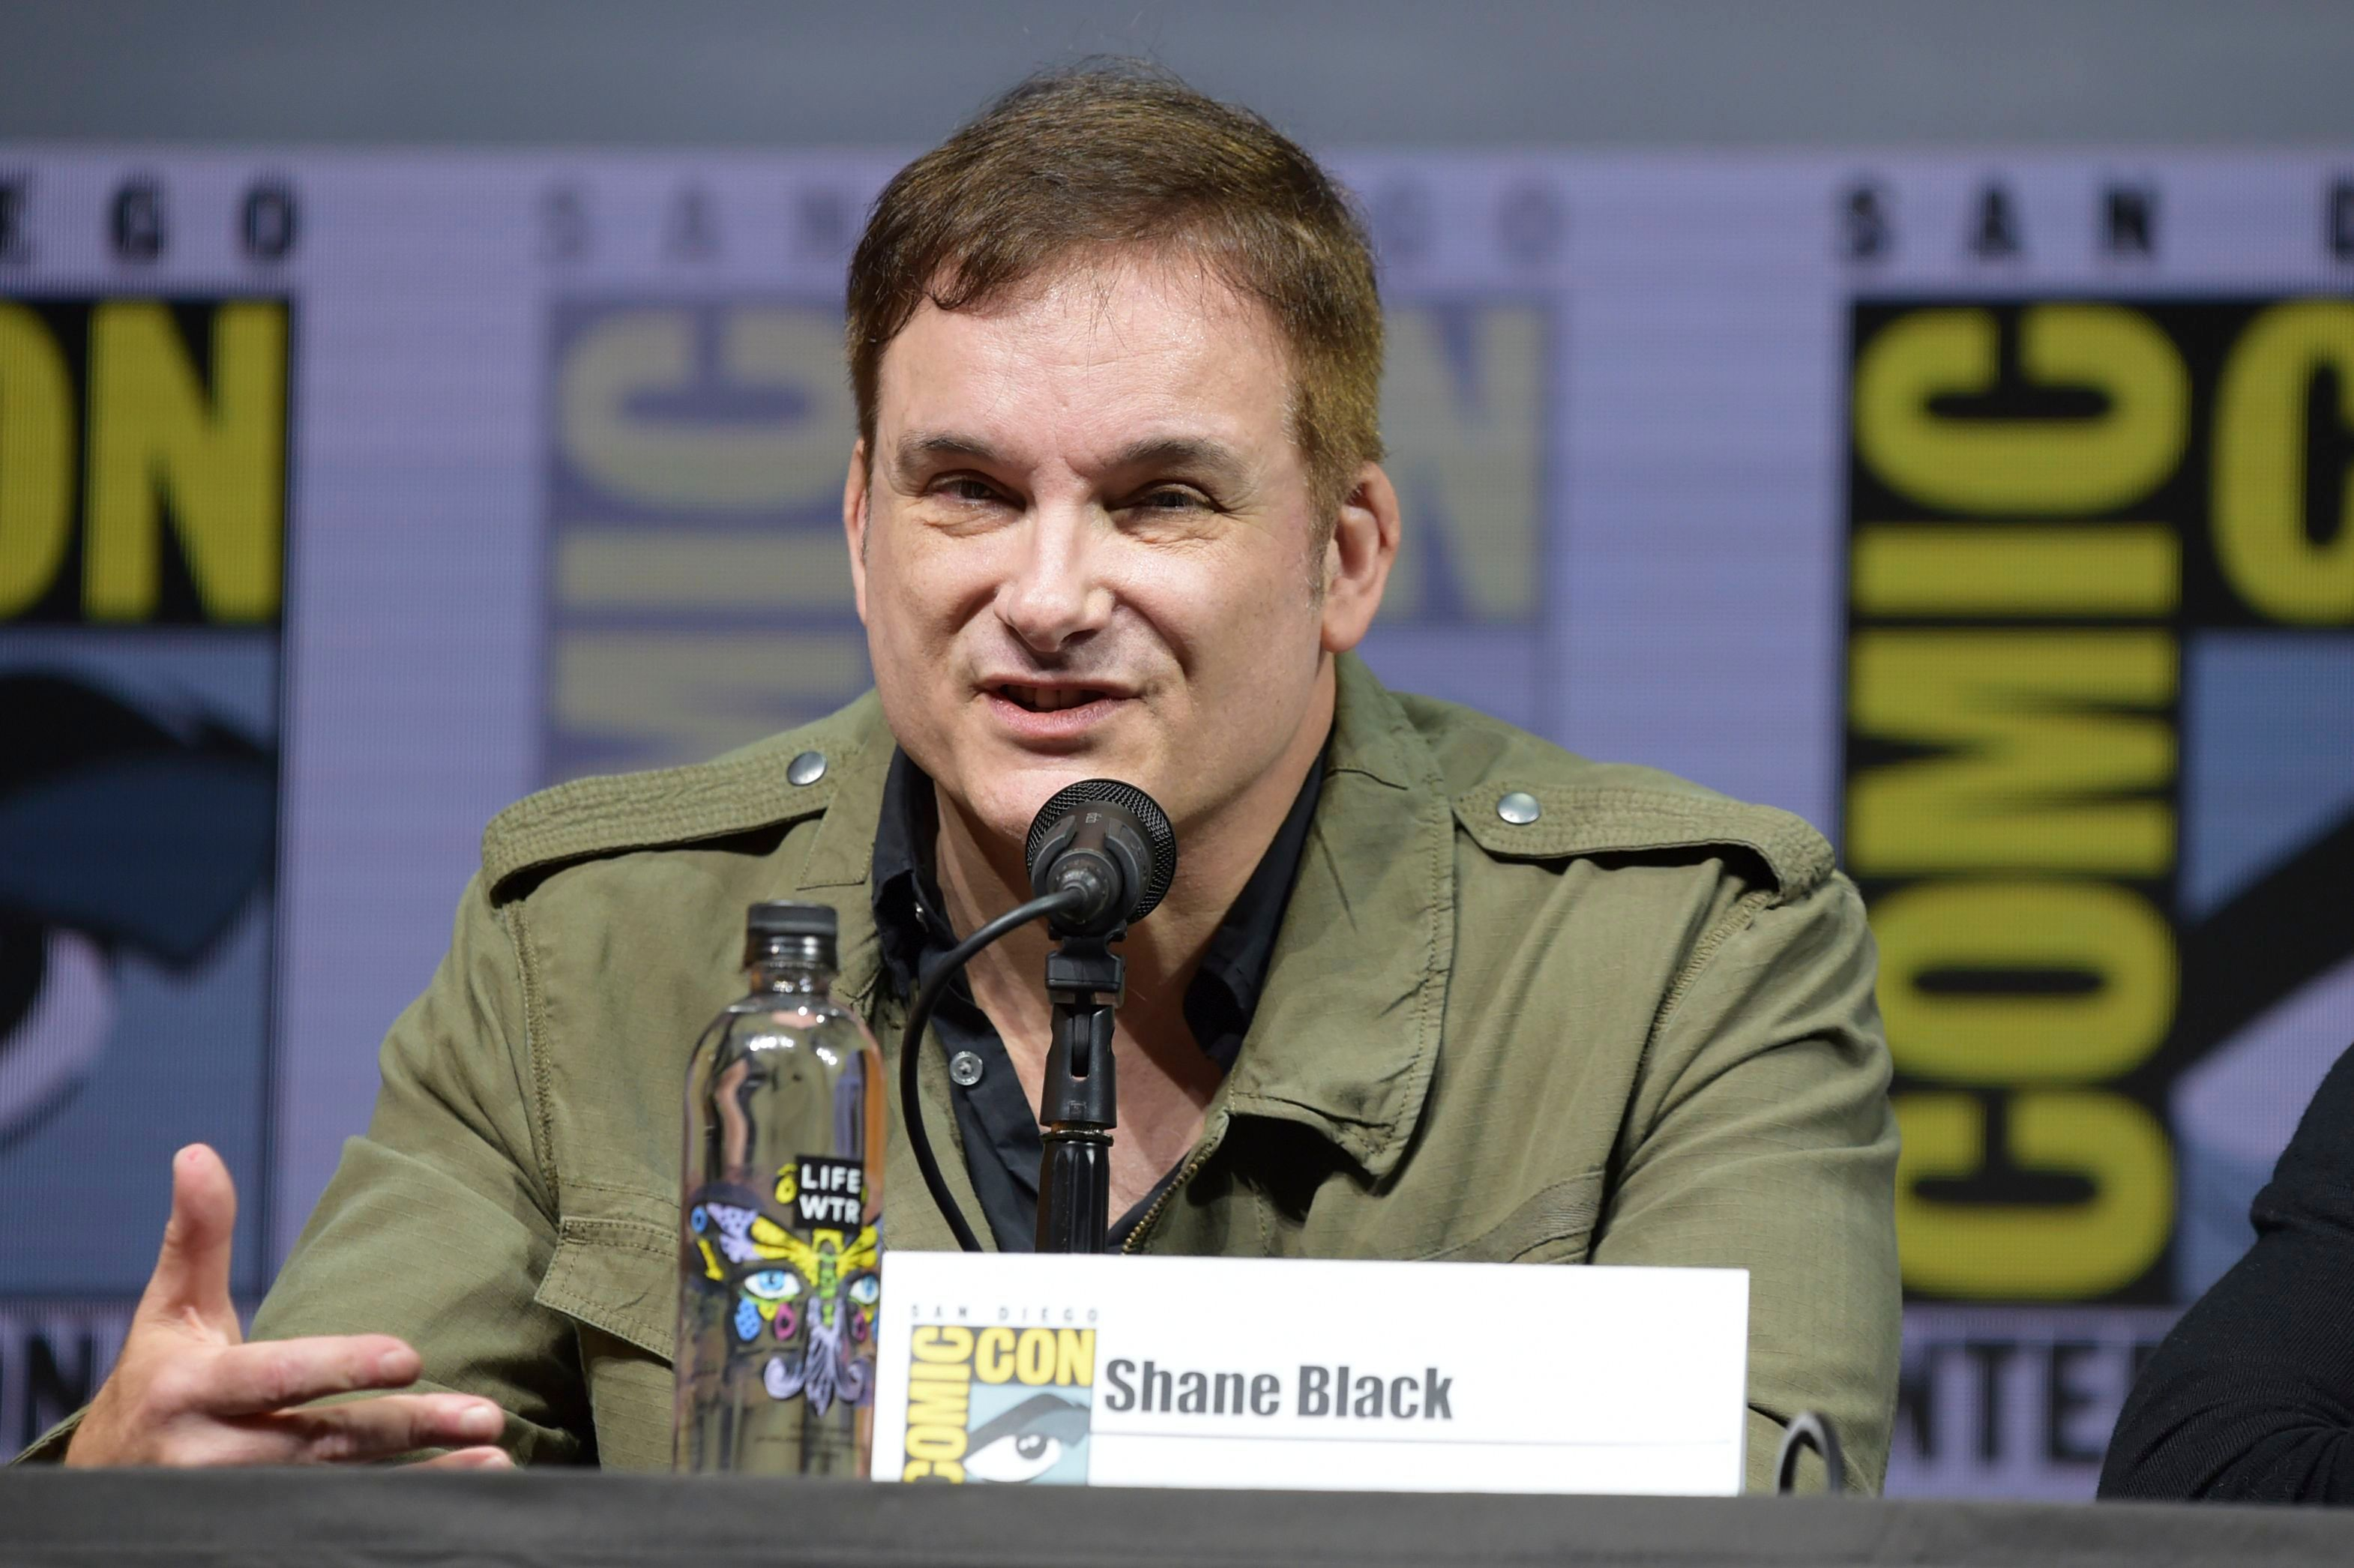 Shane Black Responds to Casting Registered Sex Offender in 'The Predator,' Says He's 'Deeply Disappointed' in Himself